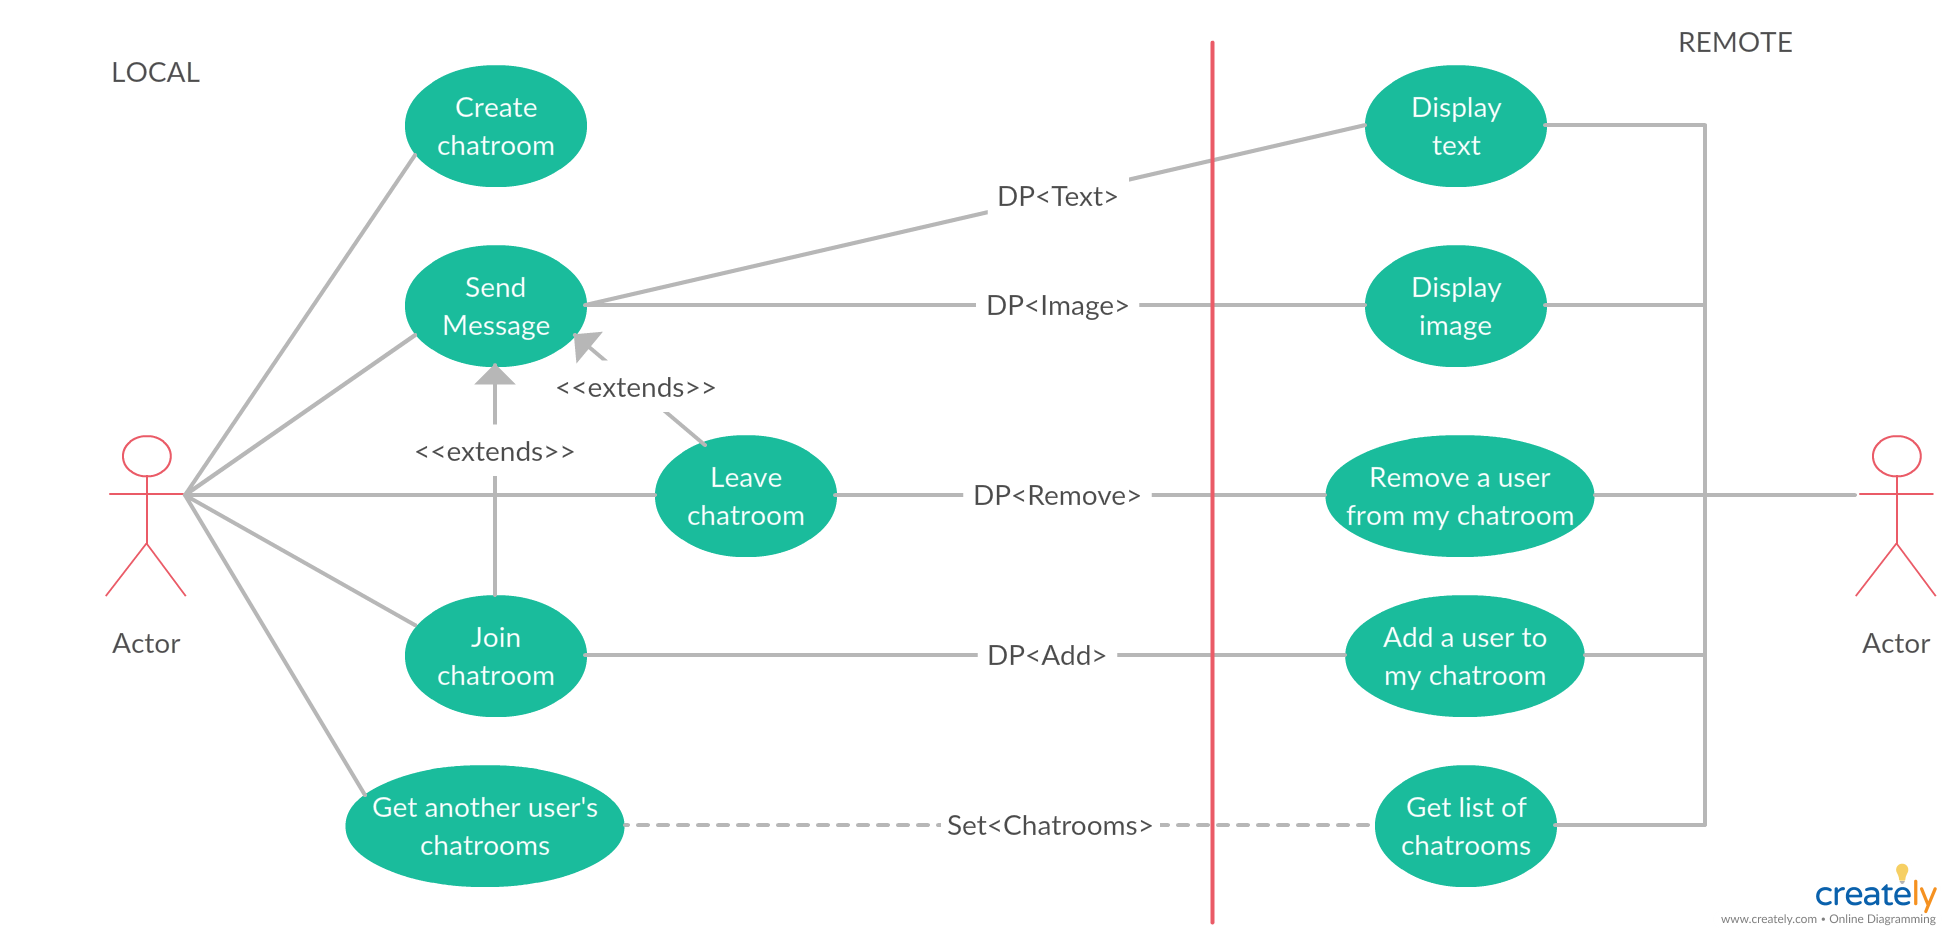 hight resolution of use case diagram for chat app the diagram shows user s interaction with the system involving two actors